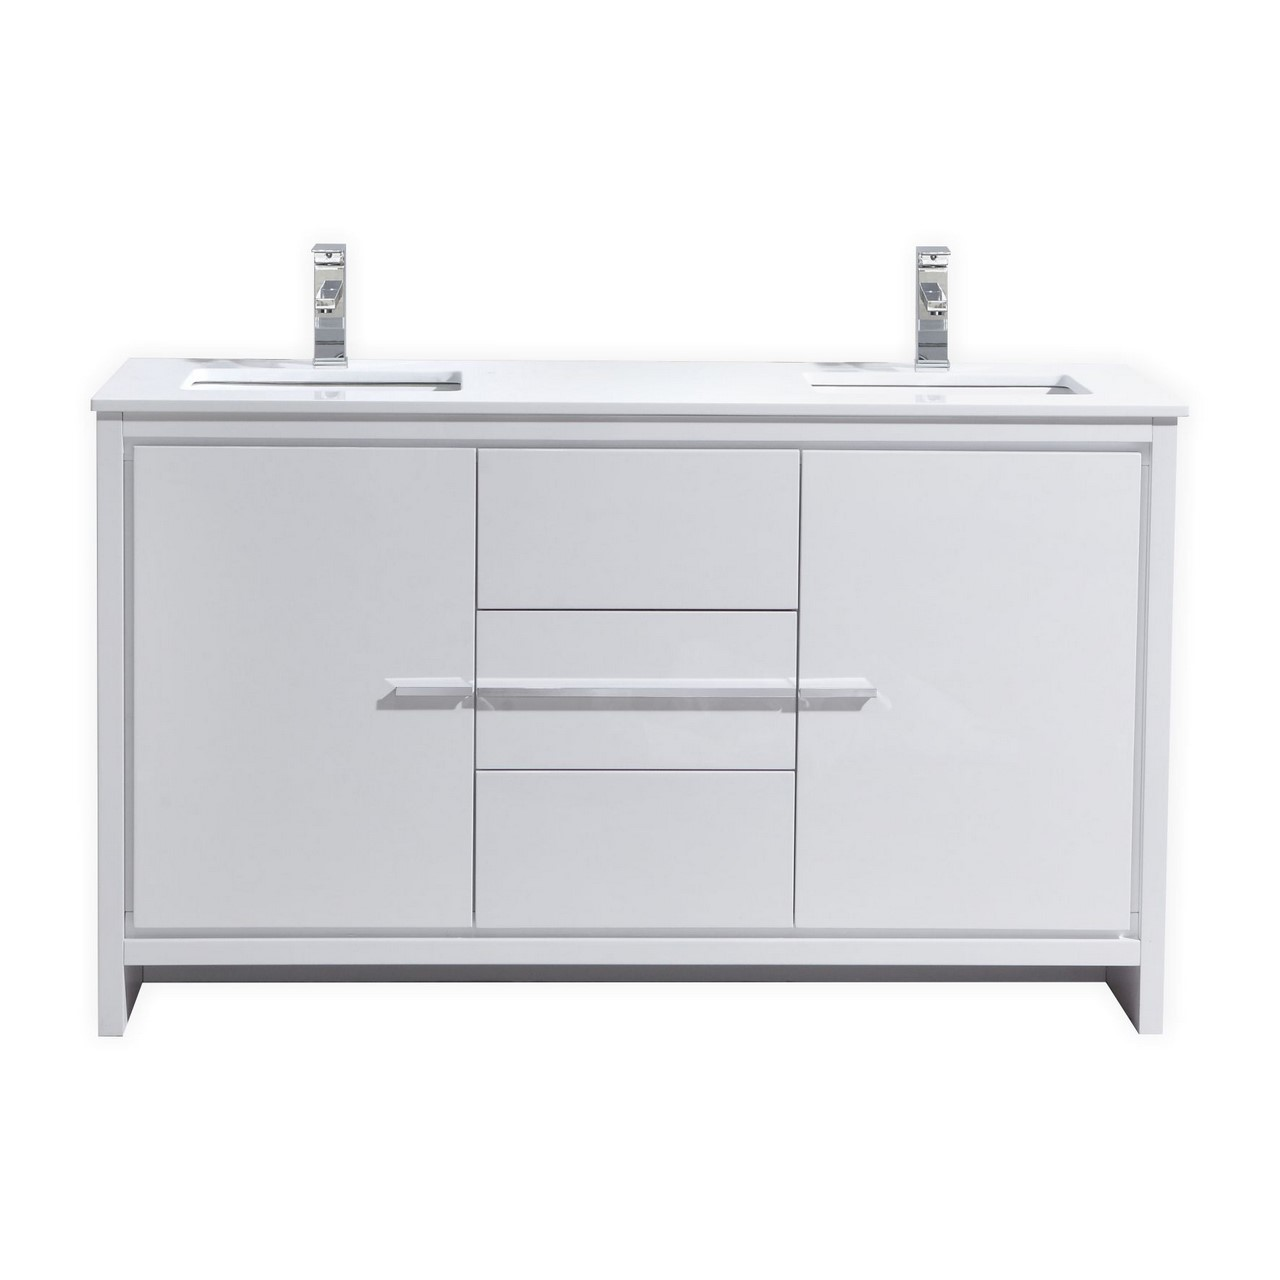 KubeBath Dolce 60u2033 Double Sink High Gloss White Modern Bathroom Vanity With  White Quartz Counter ...